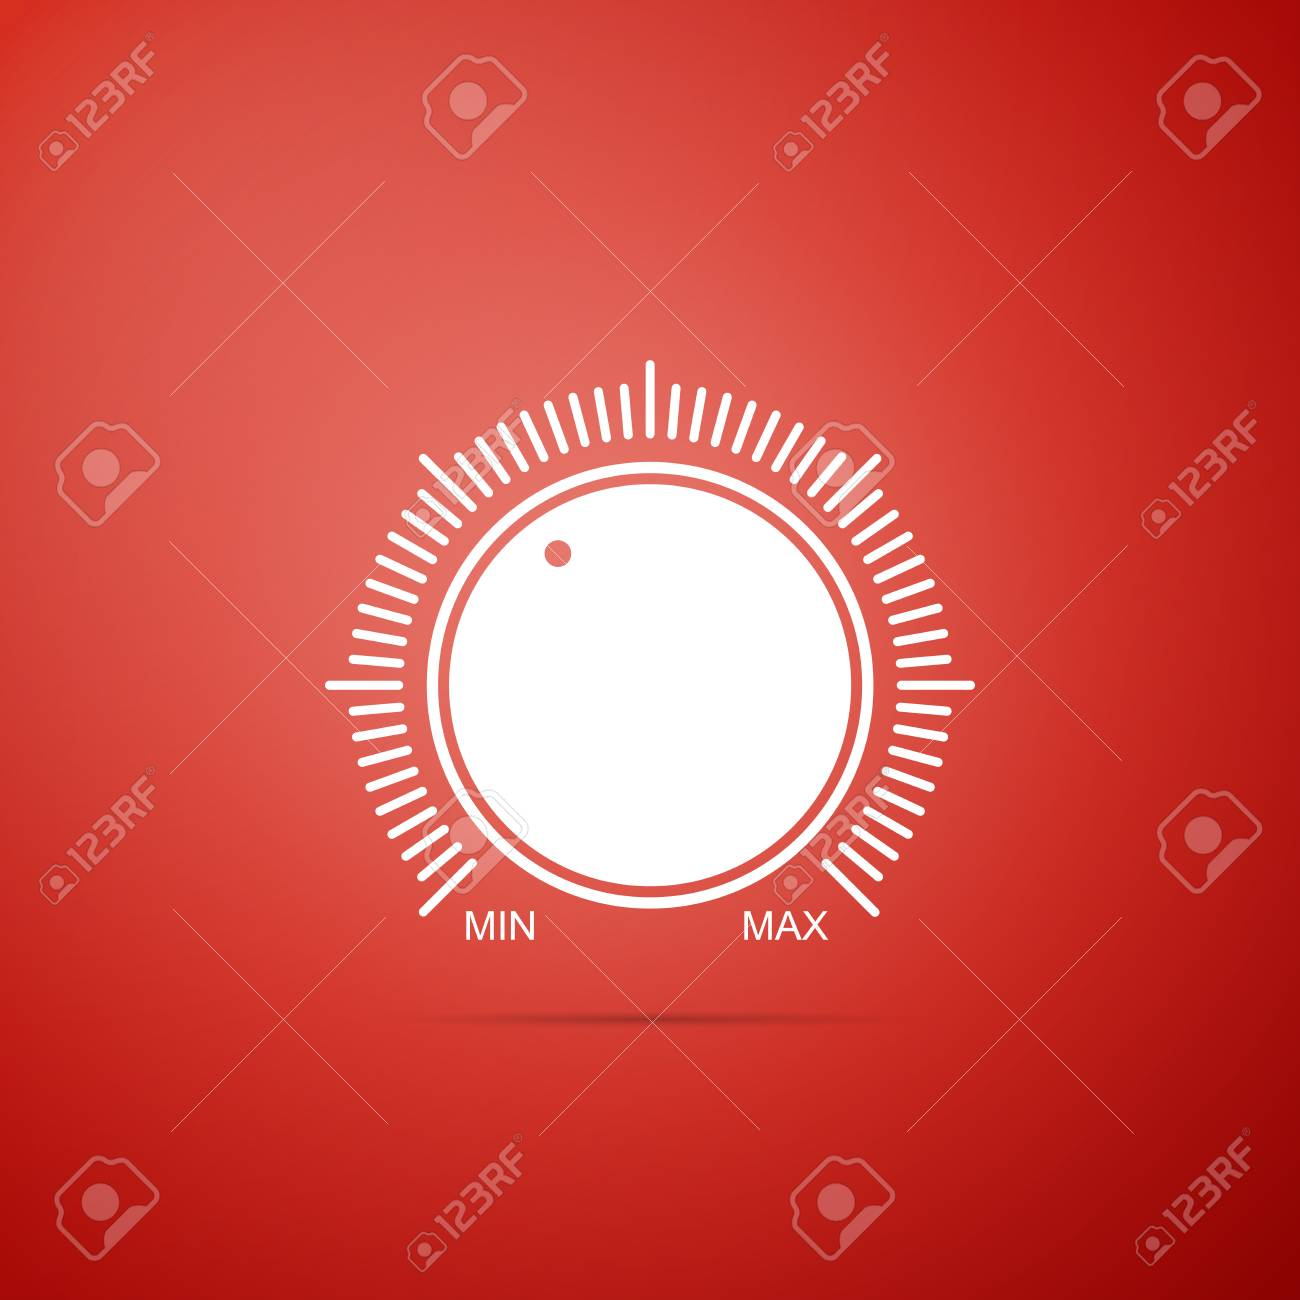 Dial knob level technology settings icon isolated on red background. Volume button, sound control, music knob with number scale, analog regulator. Flat design. Vector Illustration - 110528496